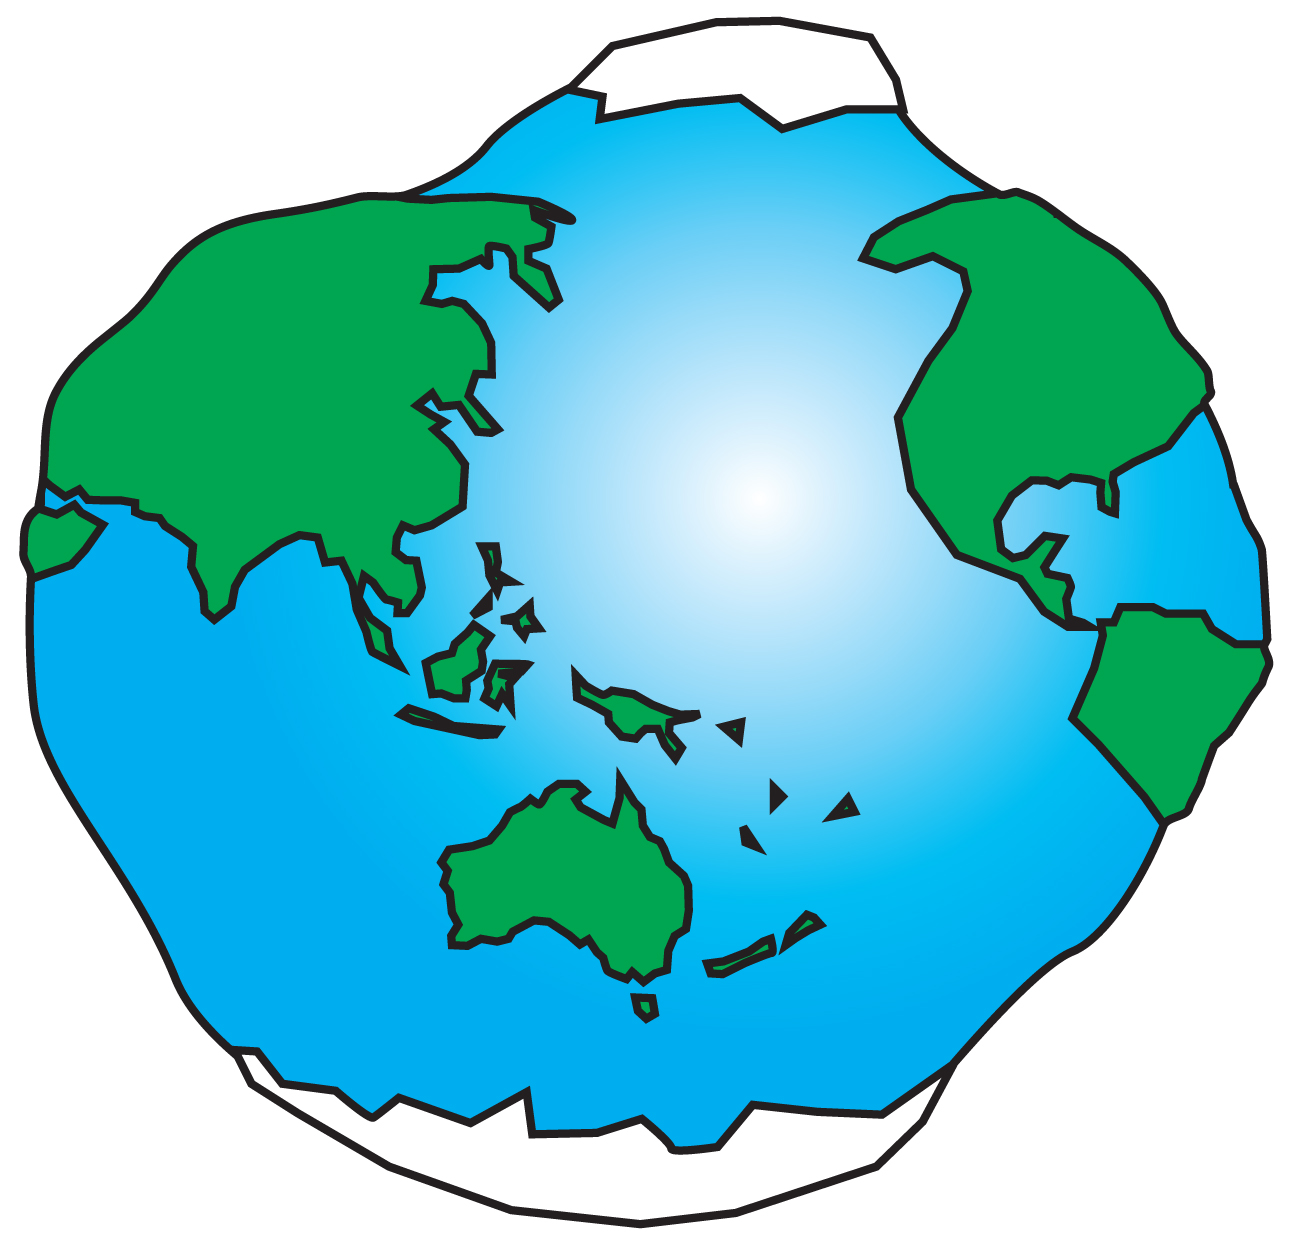 Simple globe picture